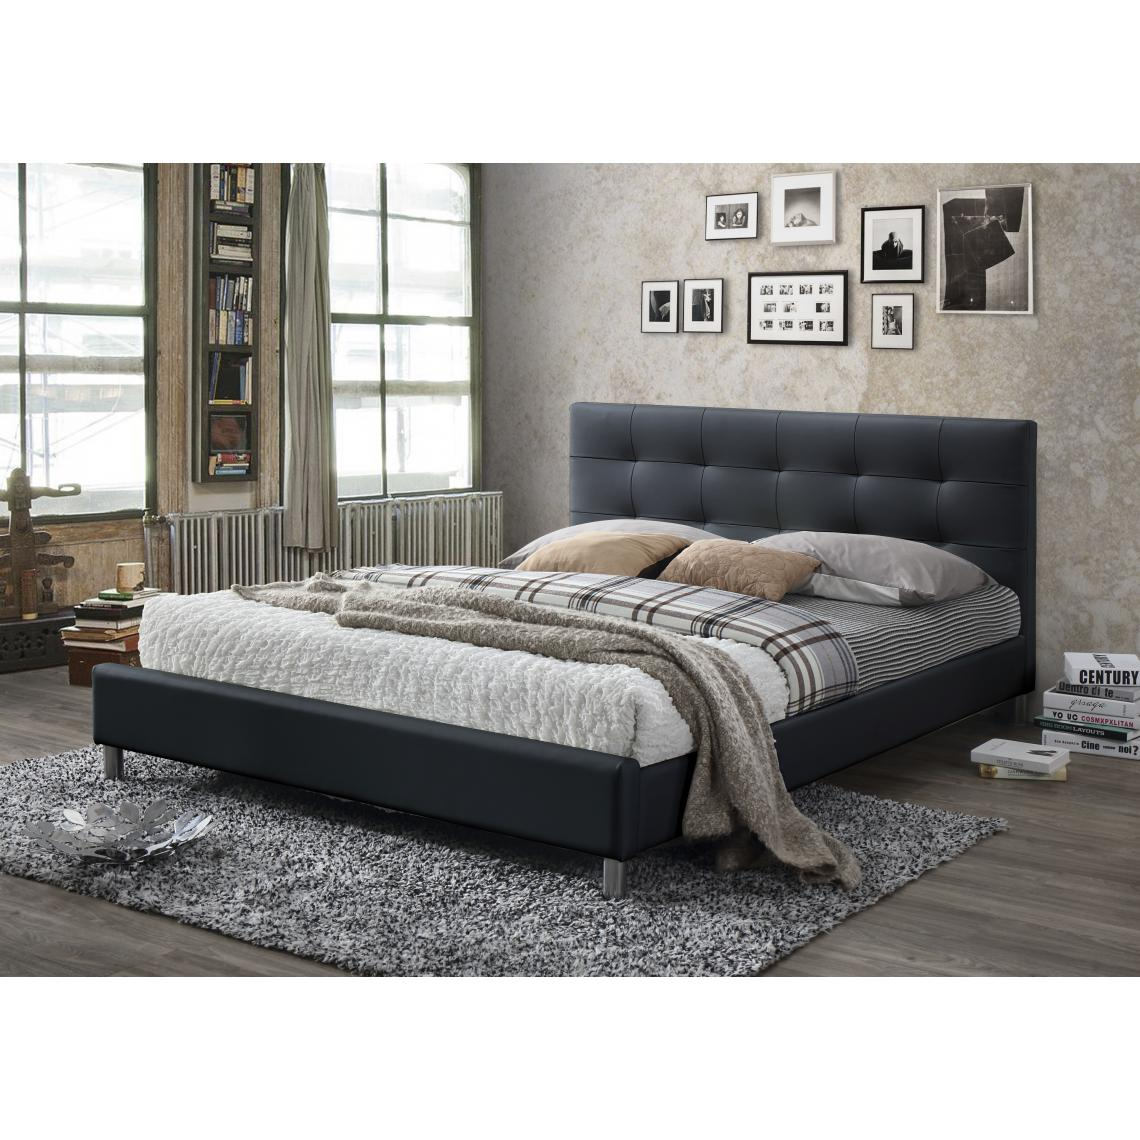 lit noir avec t te de lit capitonn e 160 eva 3 suisses. Black Bedroom Furniture Sets. Home Design Ideas